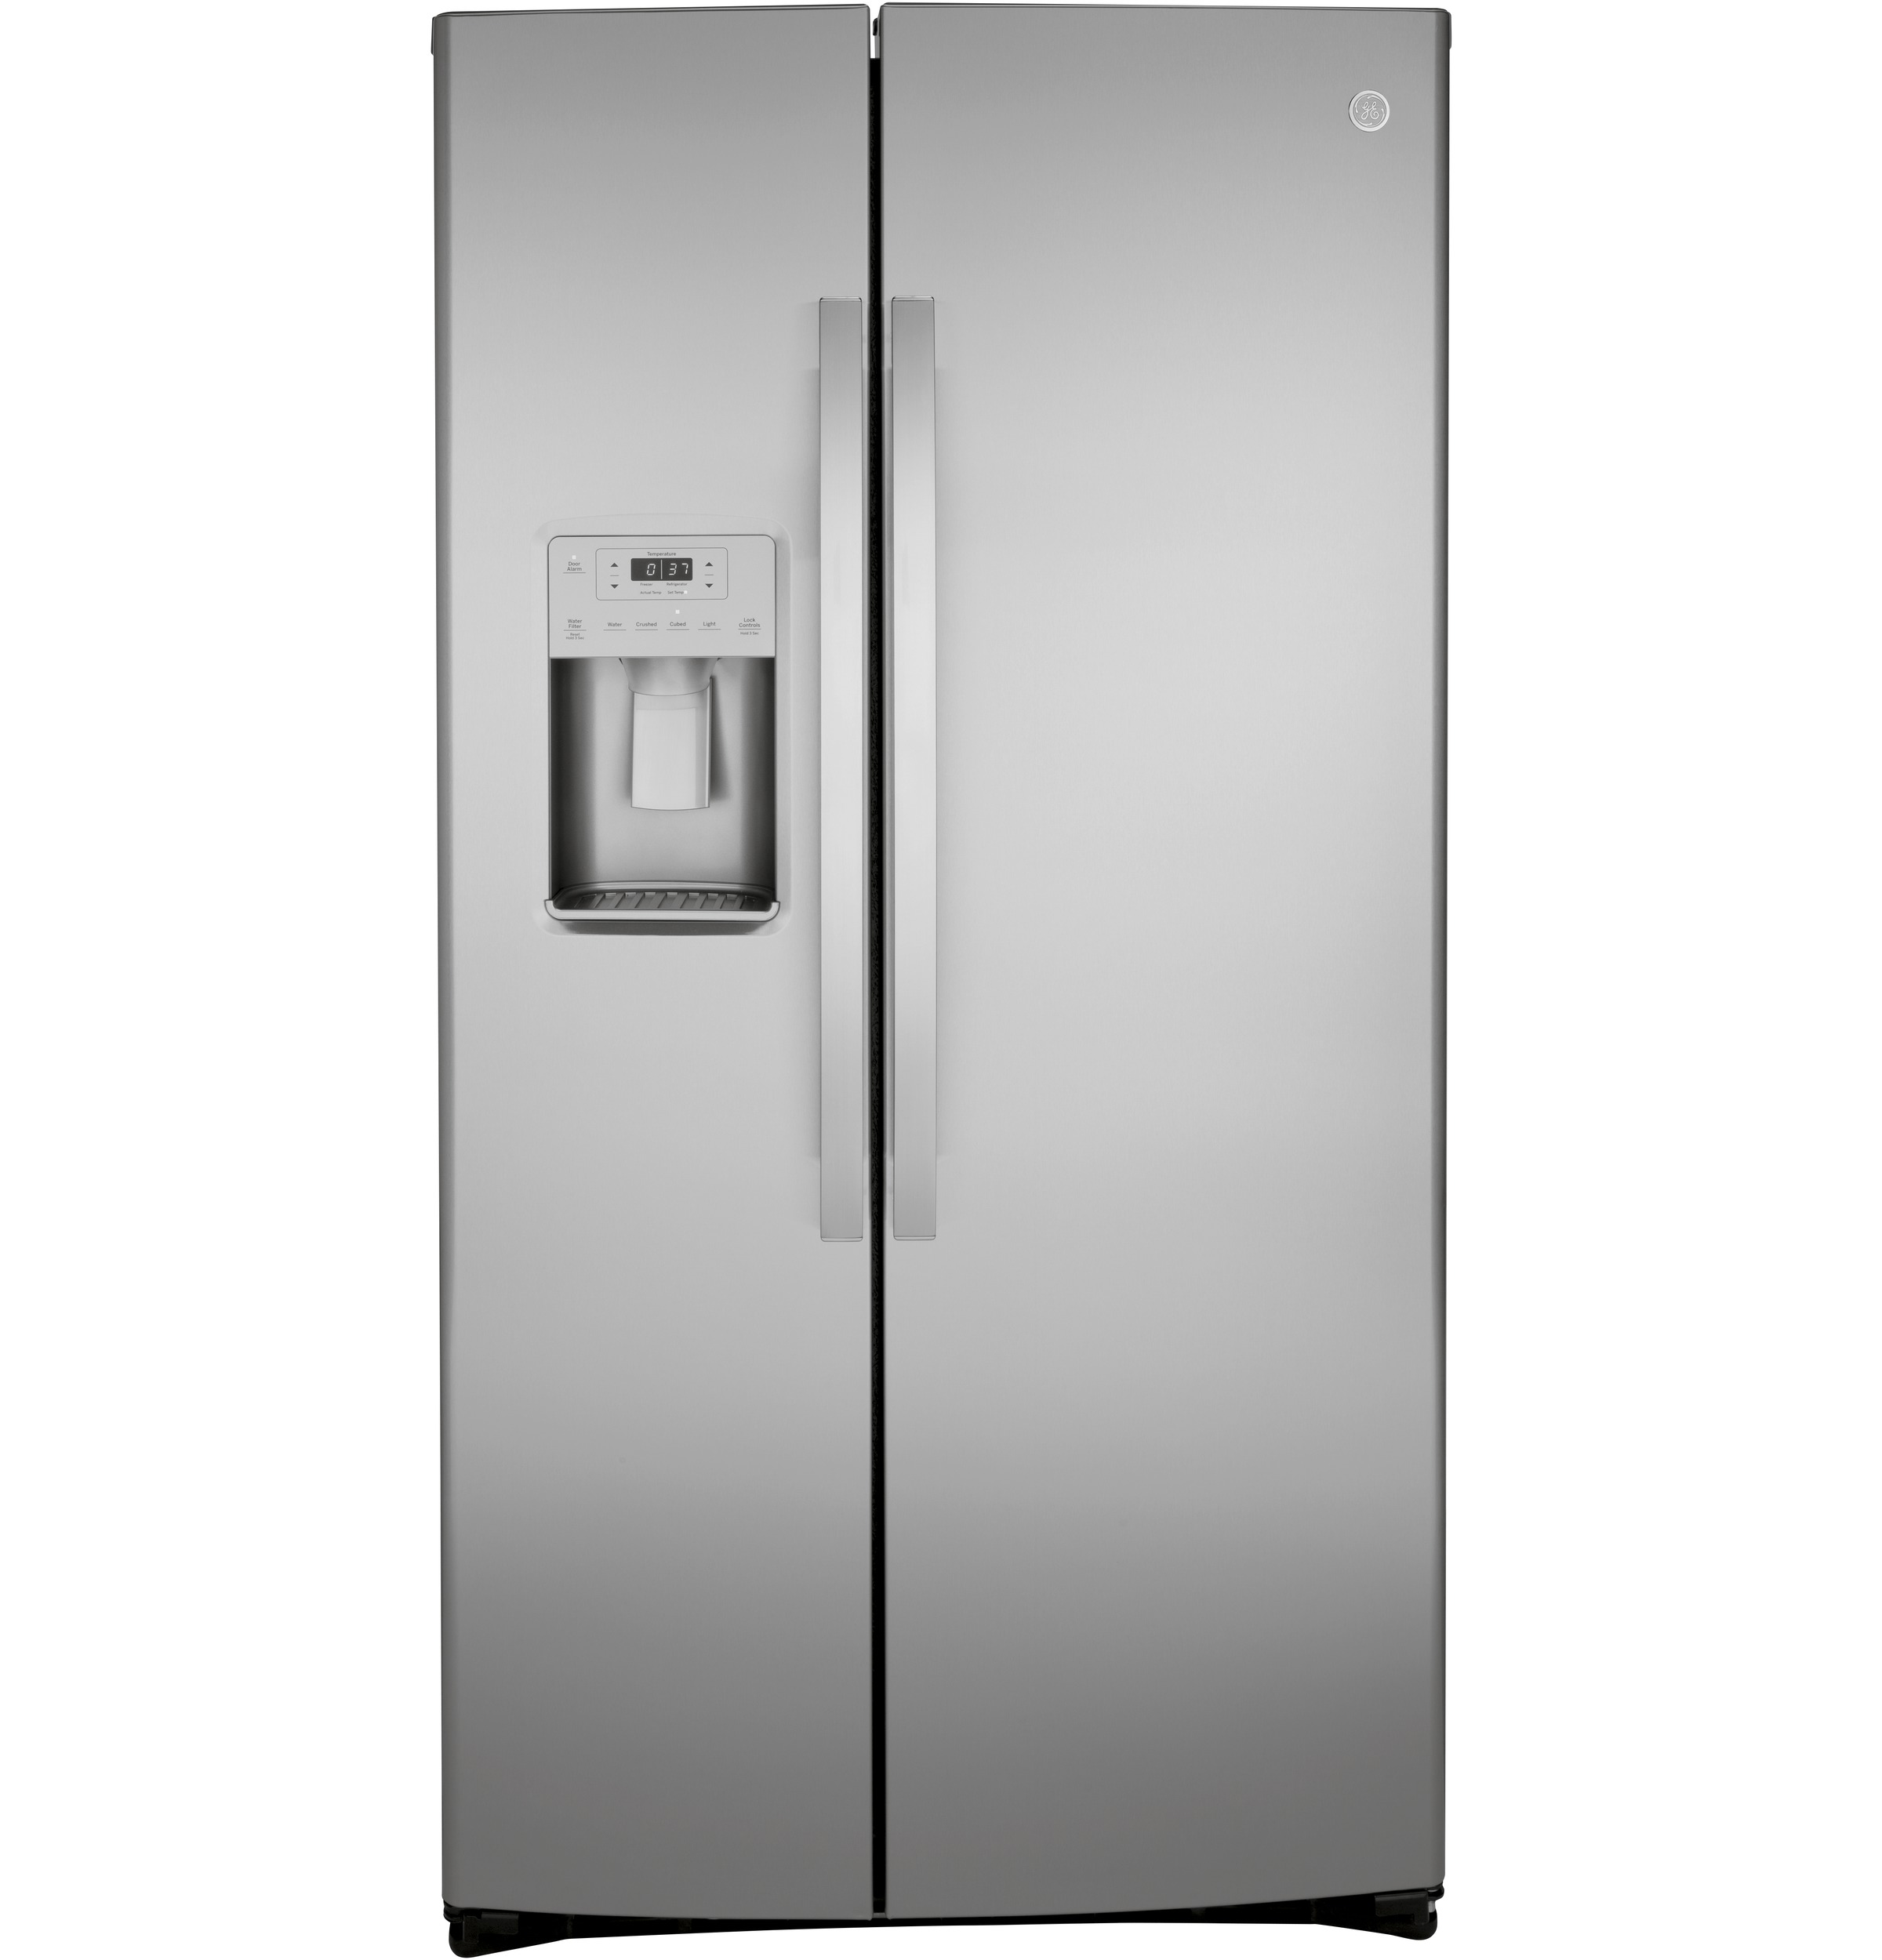 GE GE® 21.8 Cu. Ft. Counter-Depth Fingerprint Resistant Side-By-Side Refrigerator